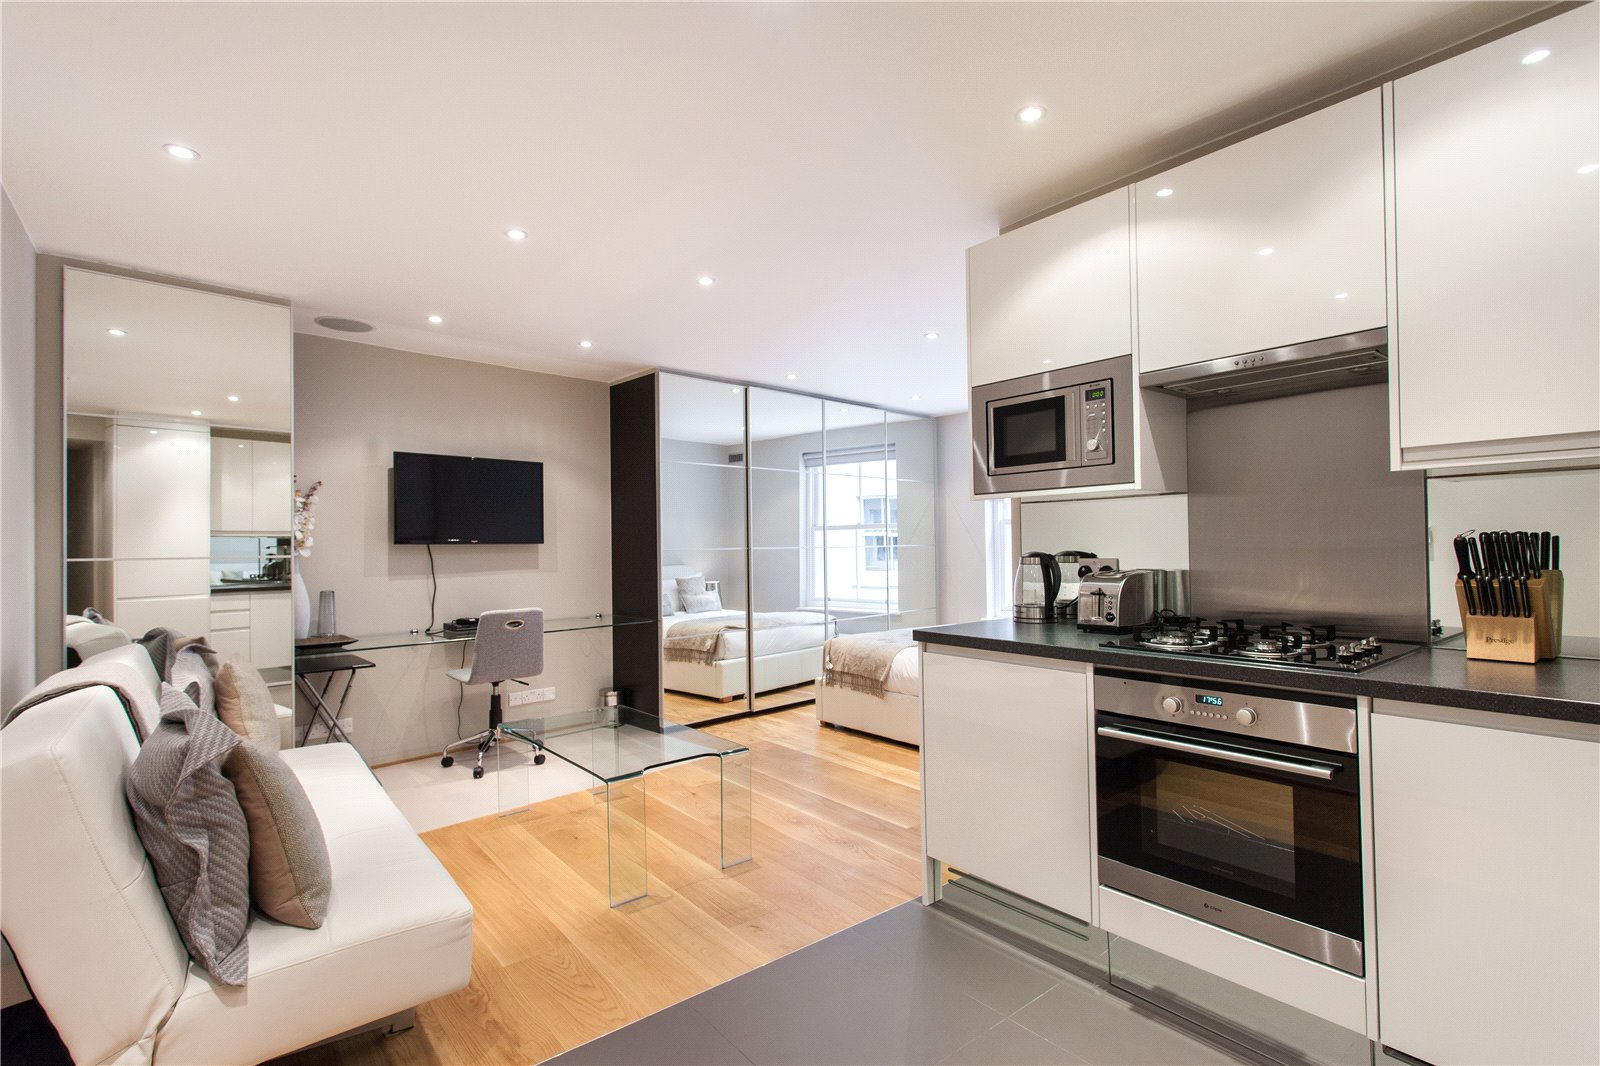 Apartment for Rent at Harrington Gardens, South Kensington, London, SW7 Harrington Gardens, South Kensington, London, SW7